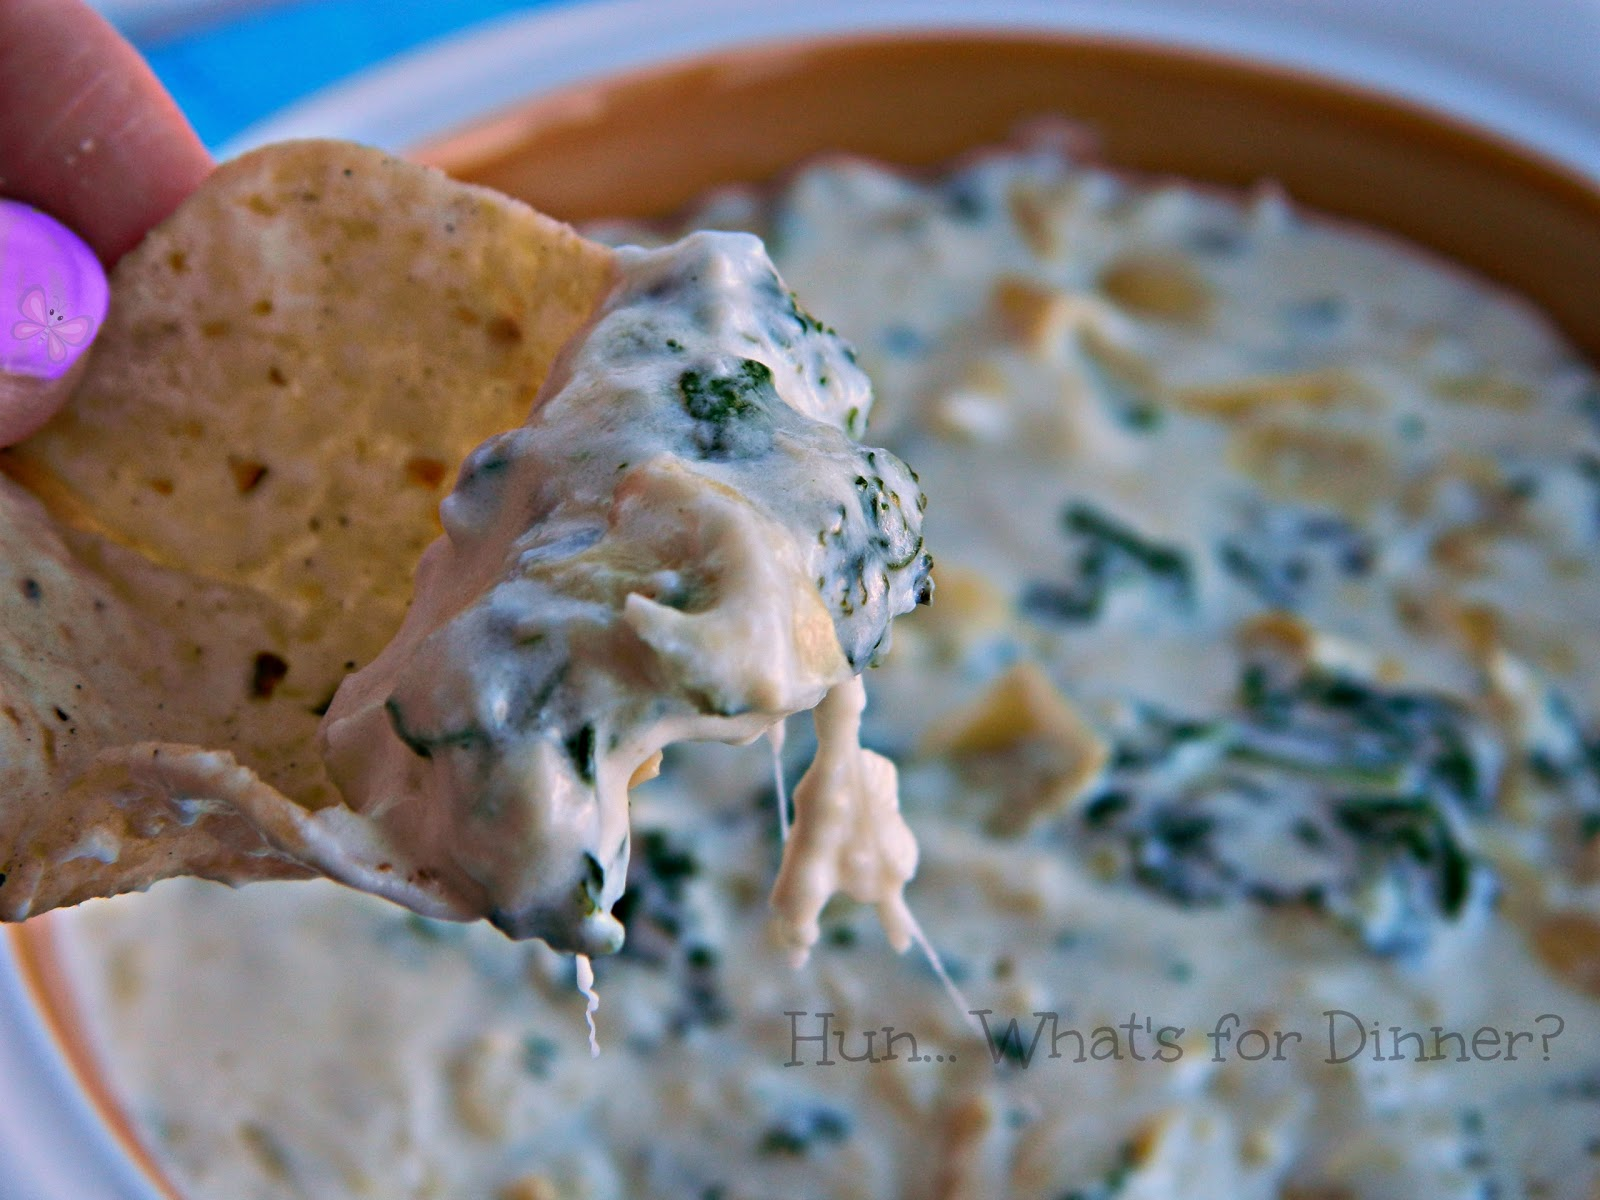 Hun... What's for Dinner? | Kale and artichokes take centre stage, in this creamy warm dip